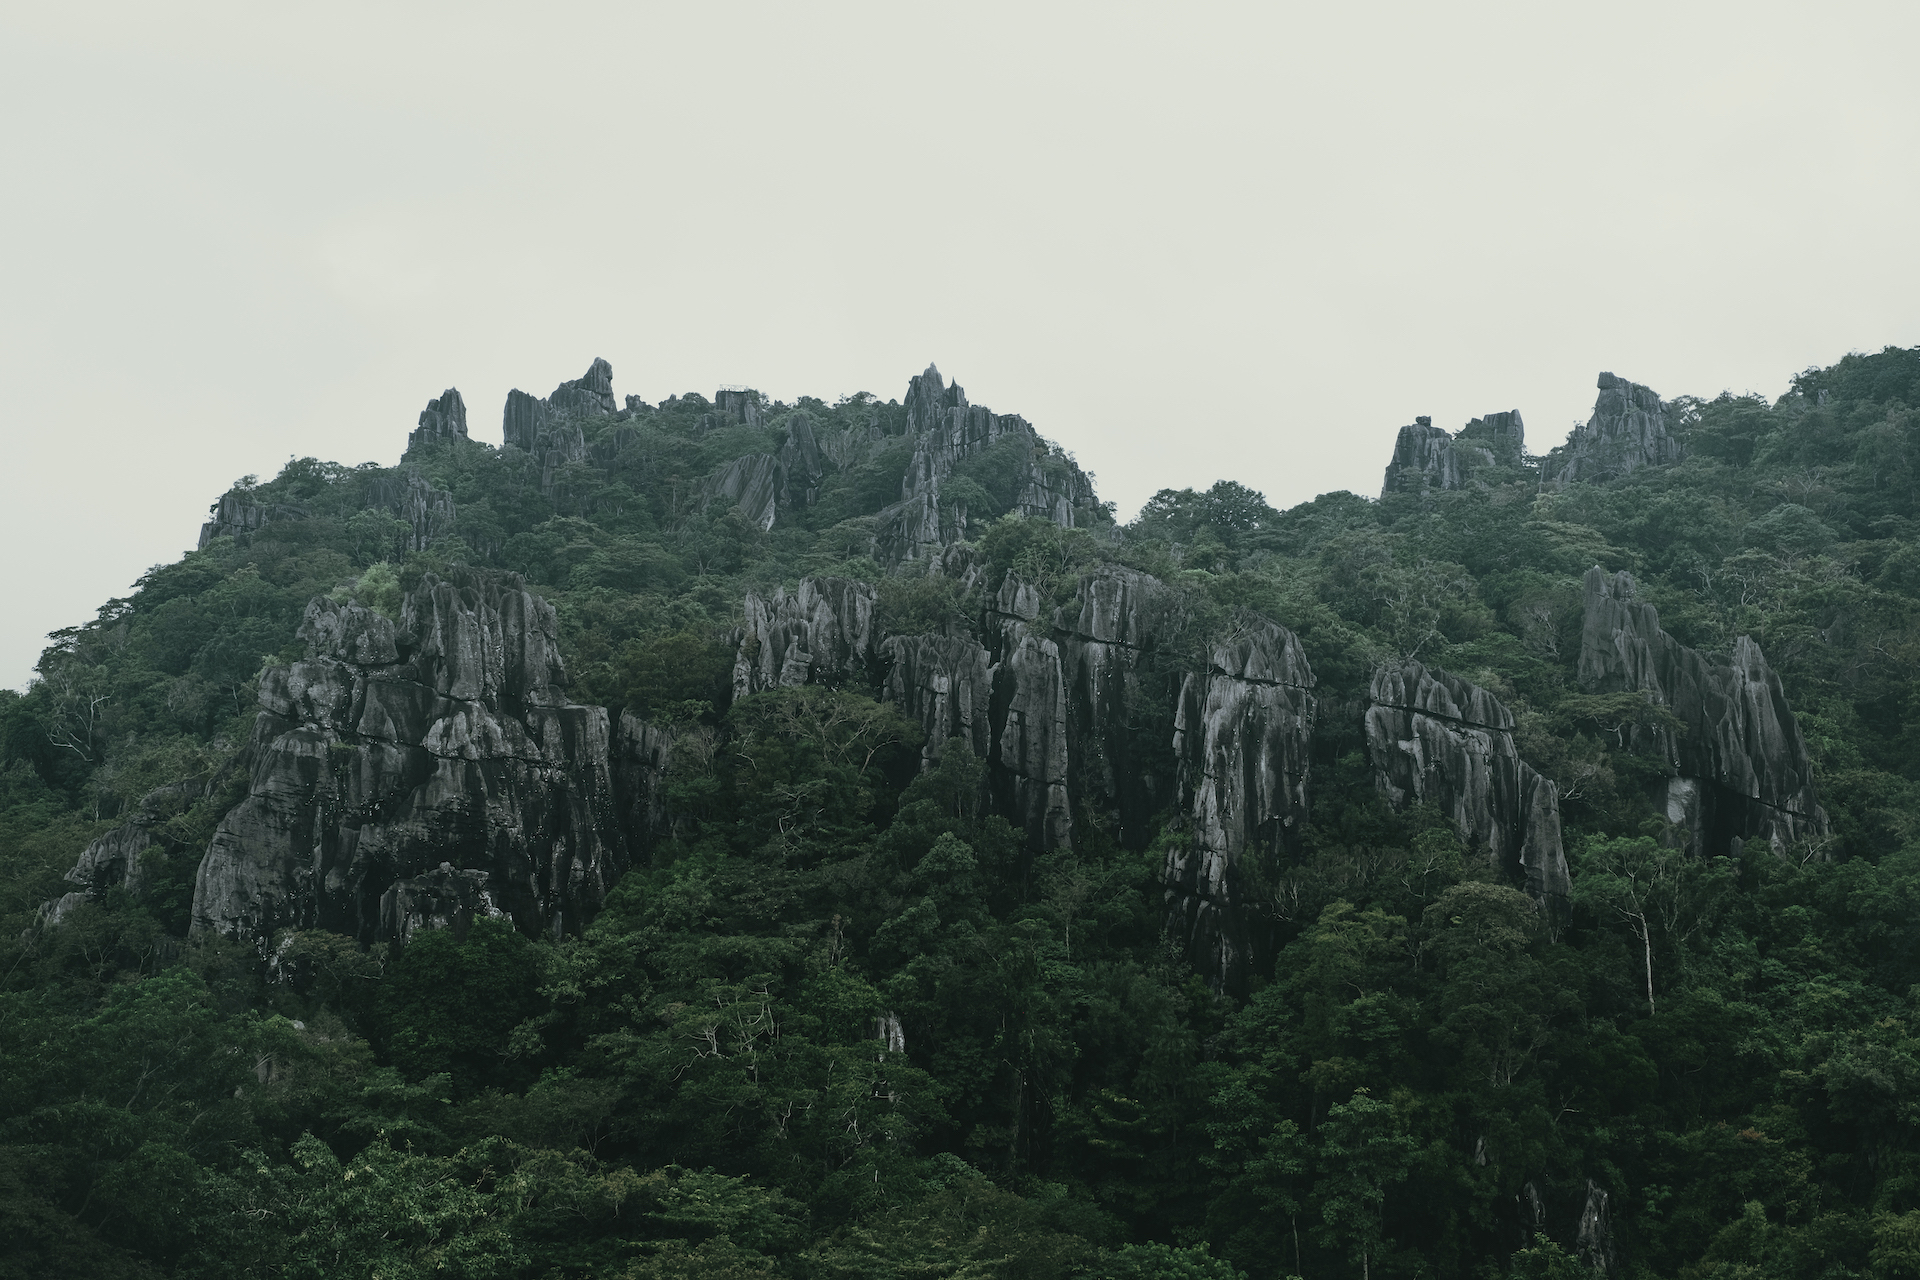 Rock formations as seen from Masungi Georeserve